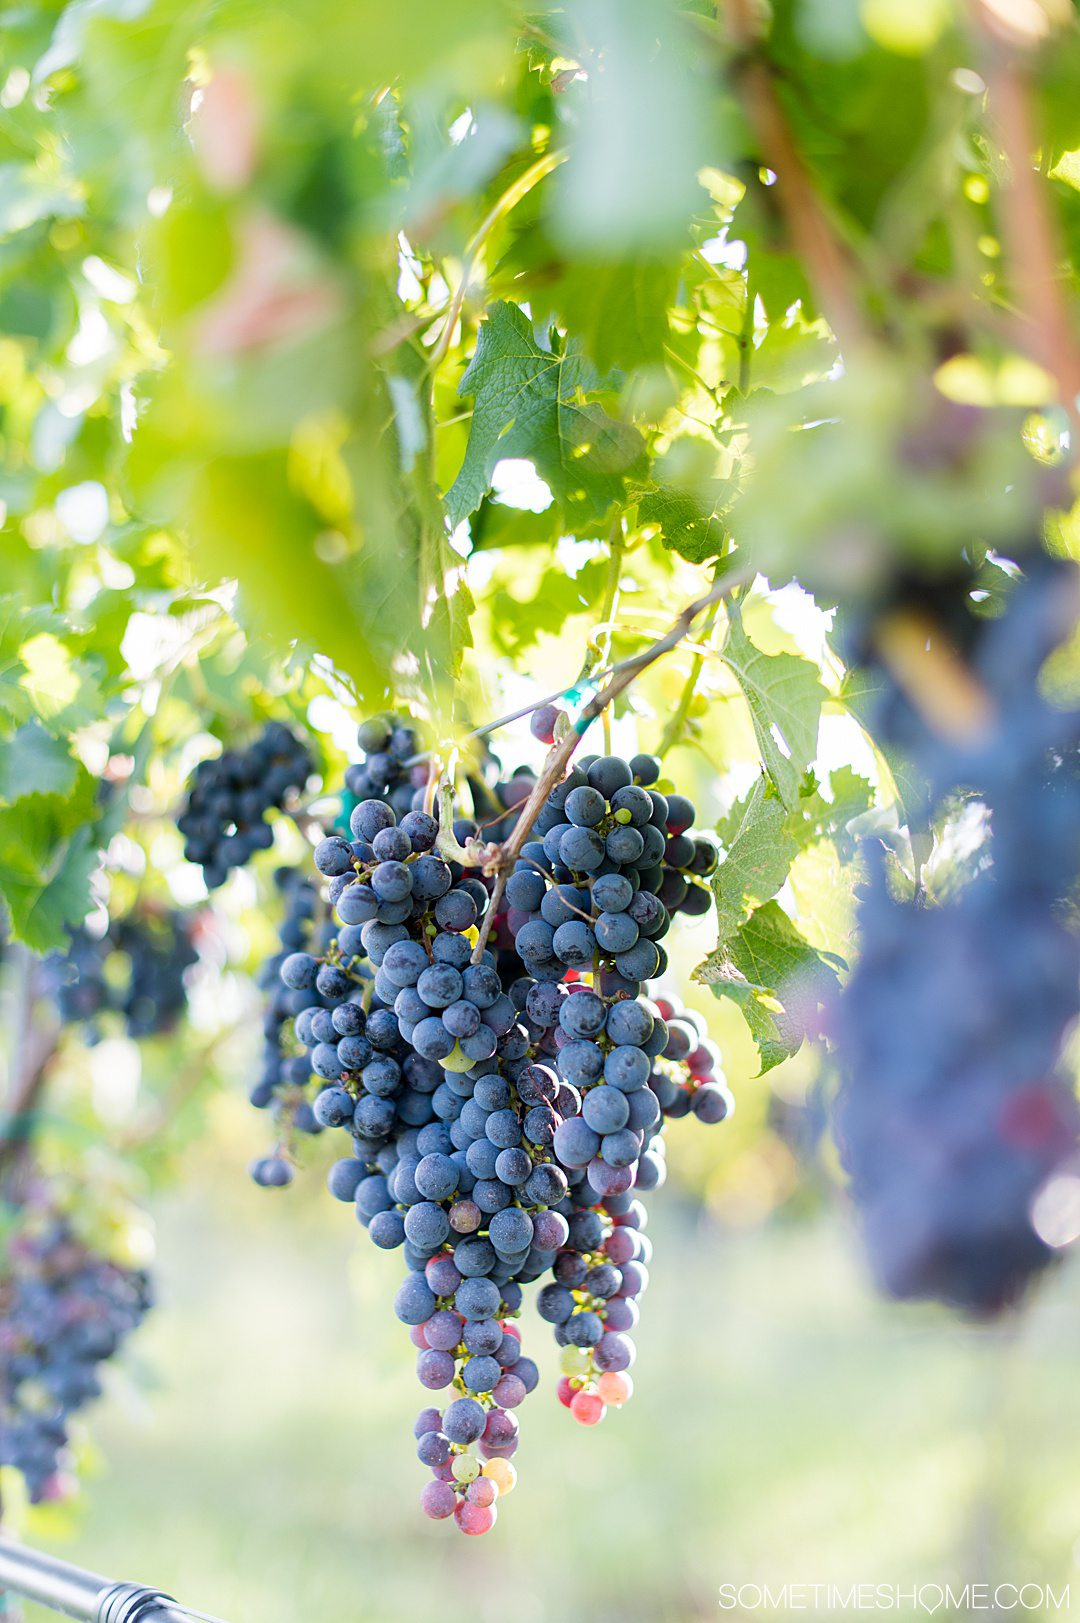 Red grapes in a purple color on a green vine at Rosemont vineyard in Virginia.